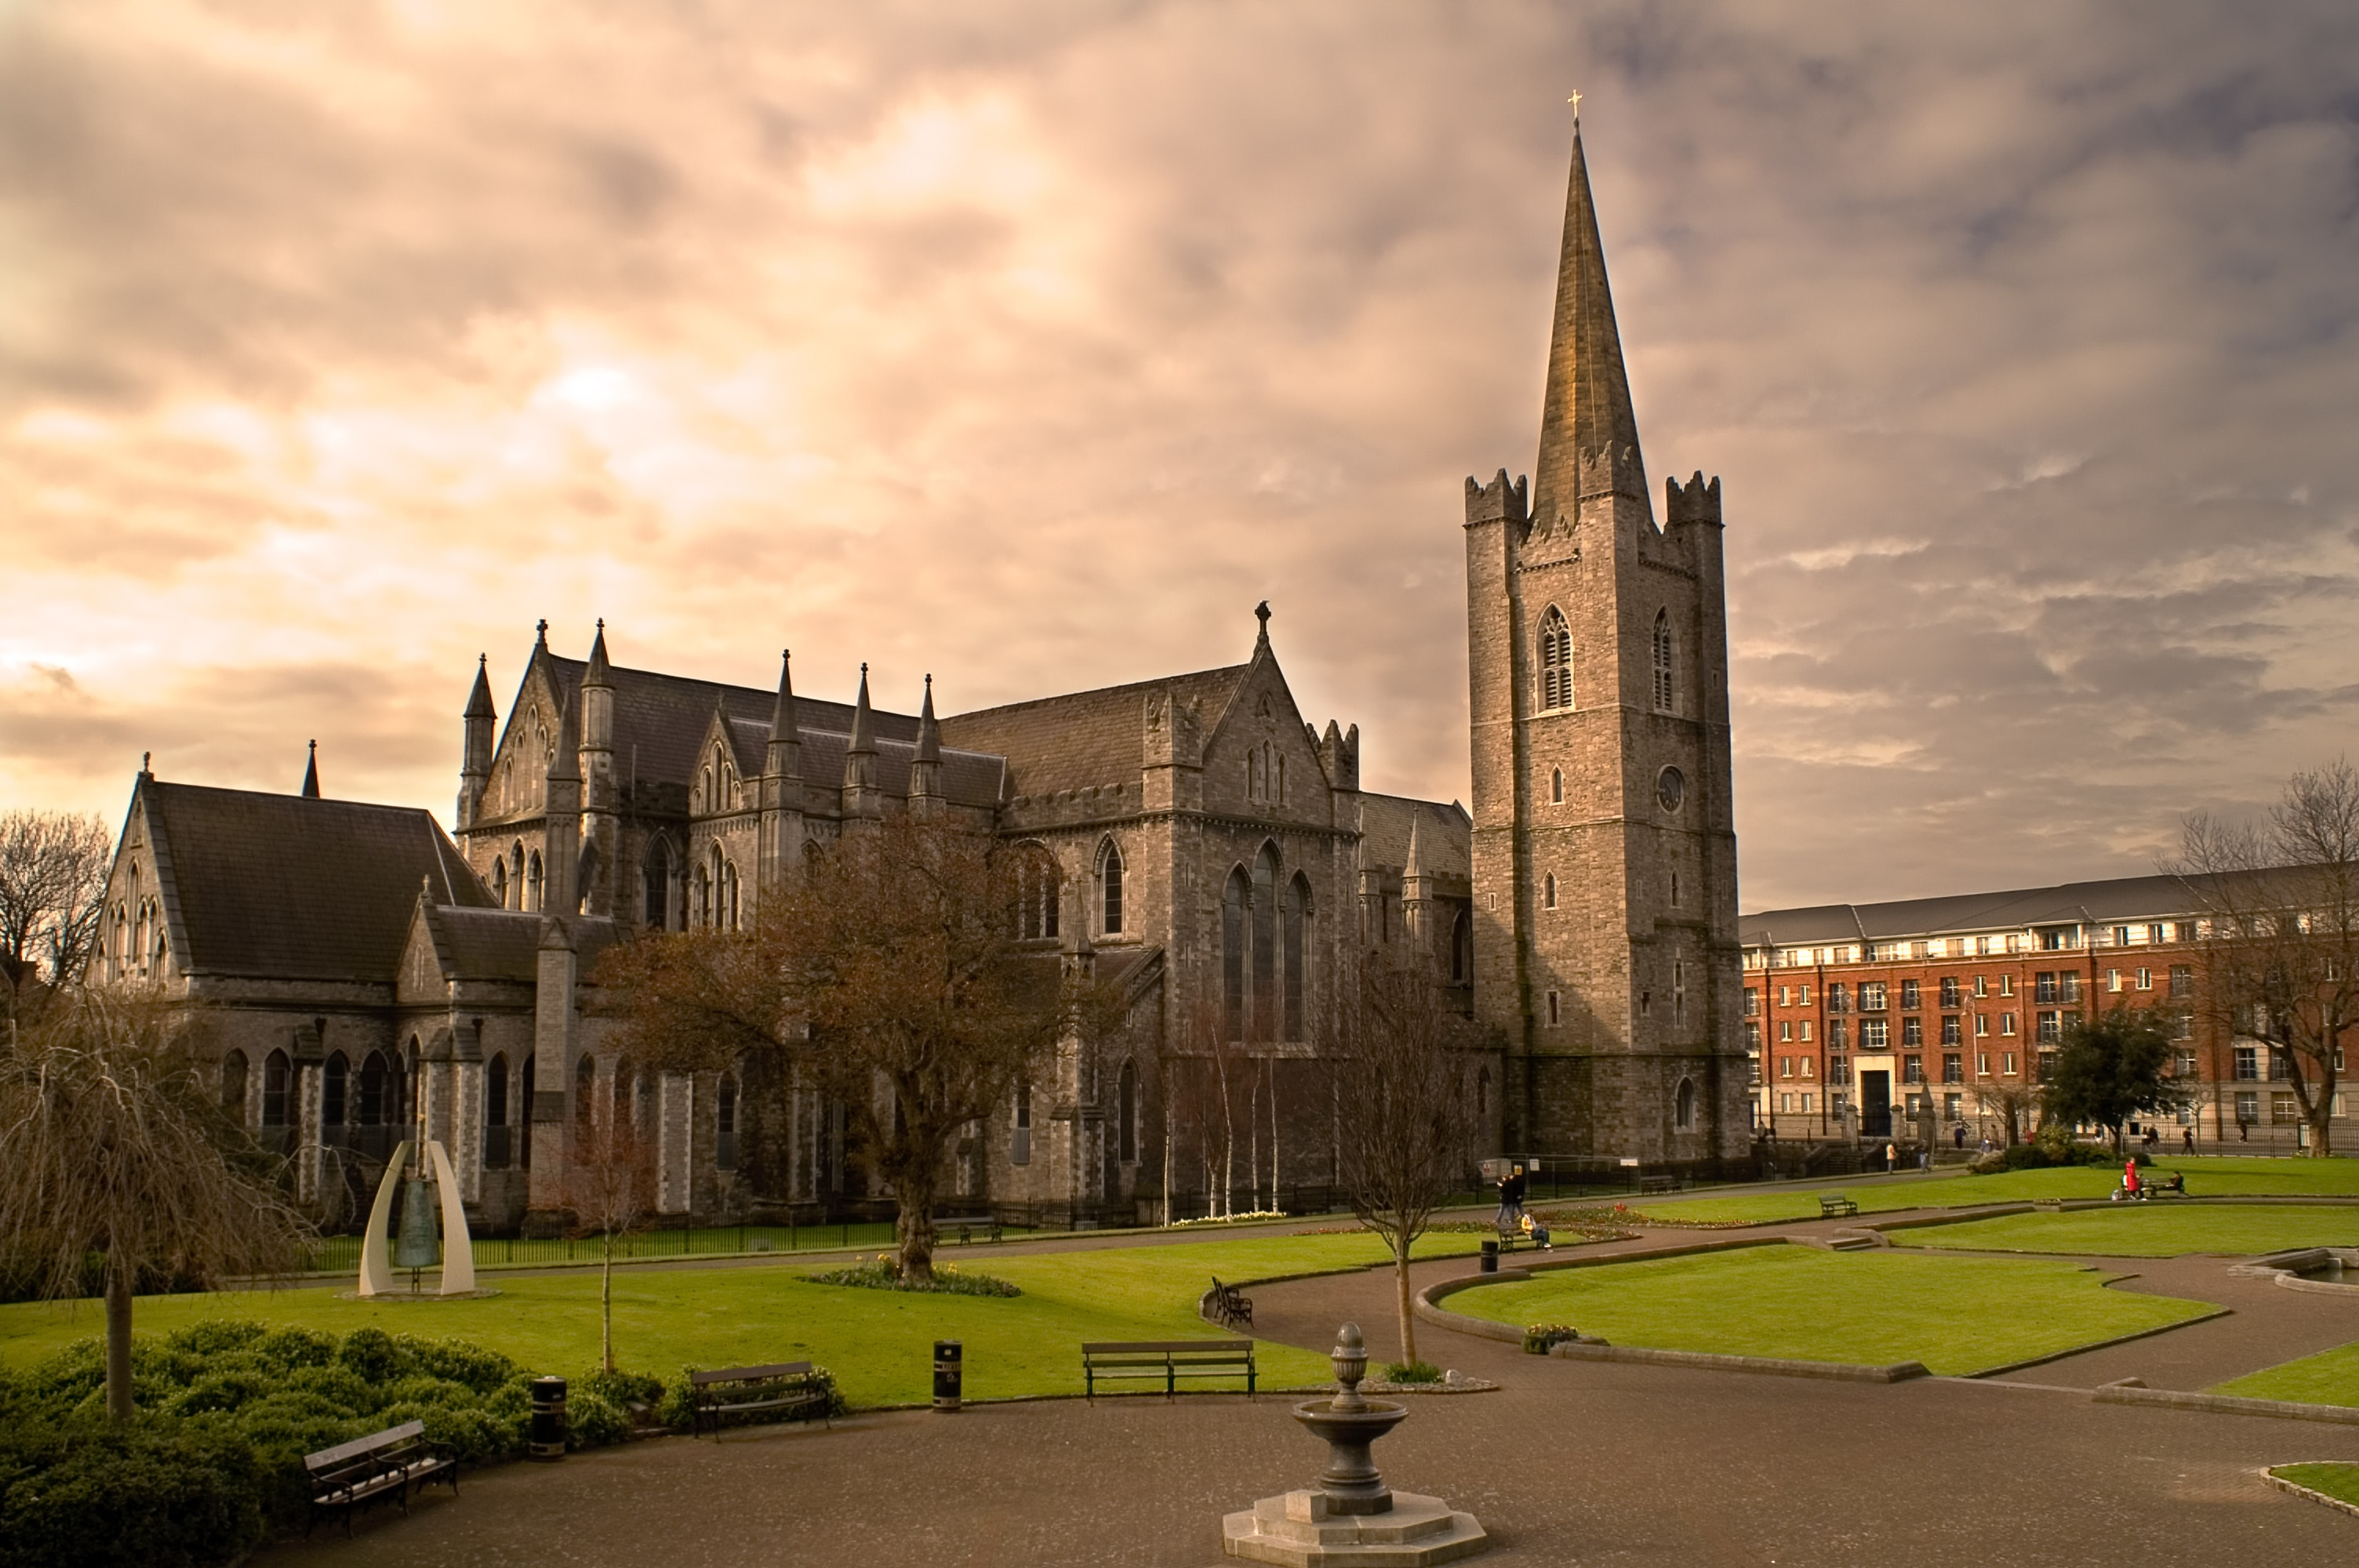 Is the sun shining on the St Patricks cathedral in Dublin right now?